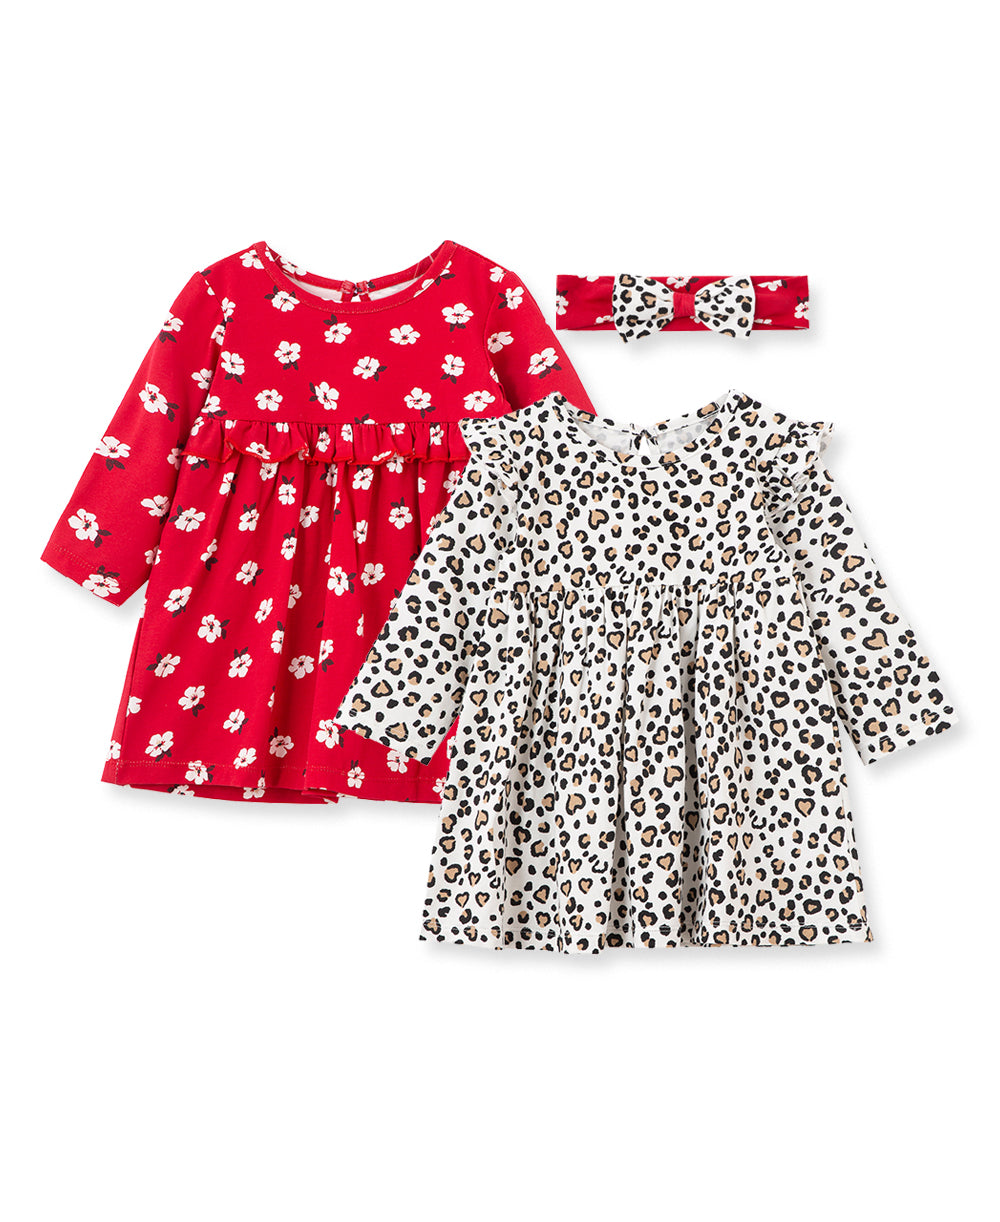 Leopard 2-Pack Toddler Dress Set